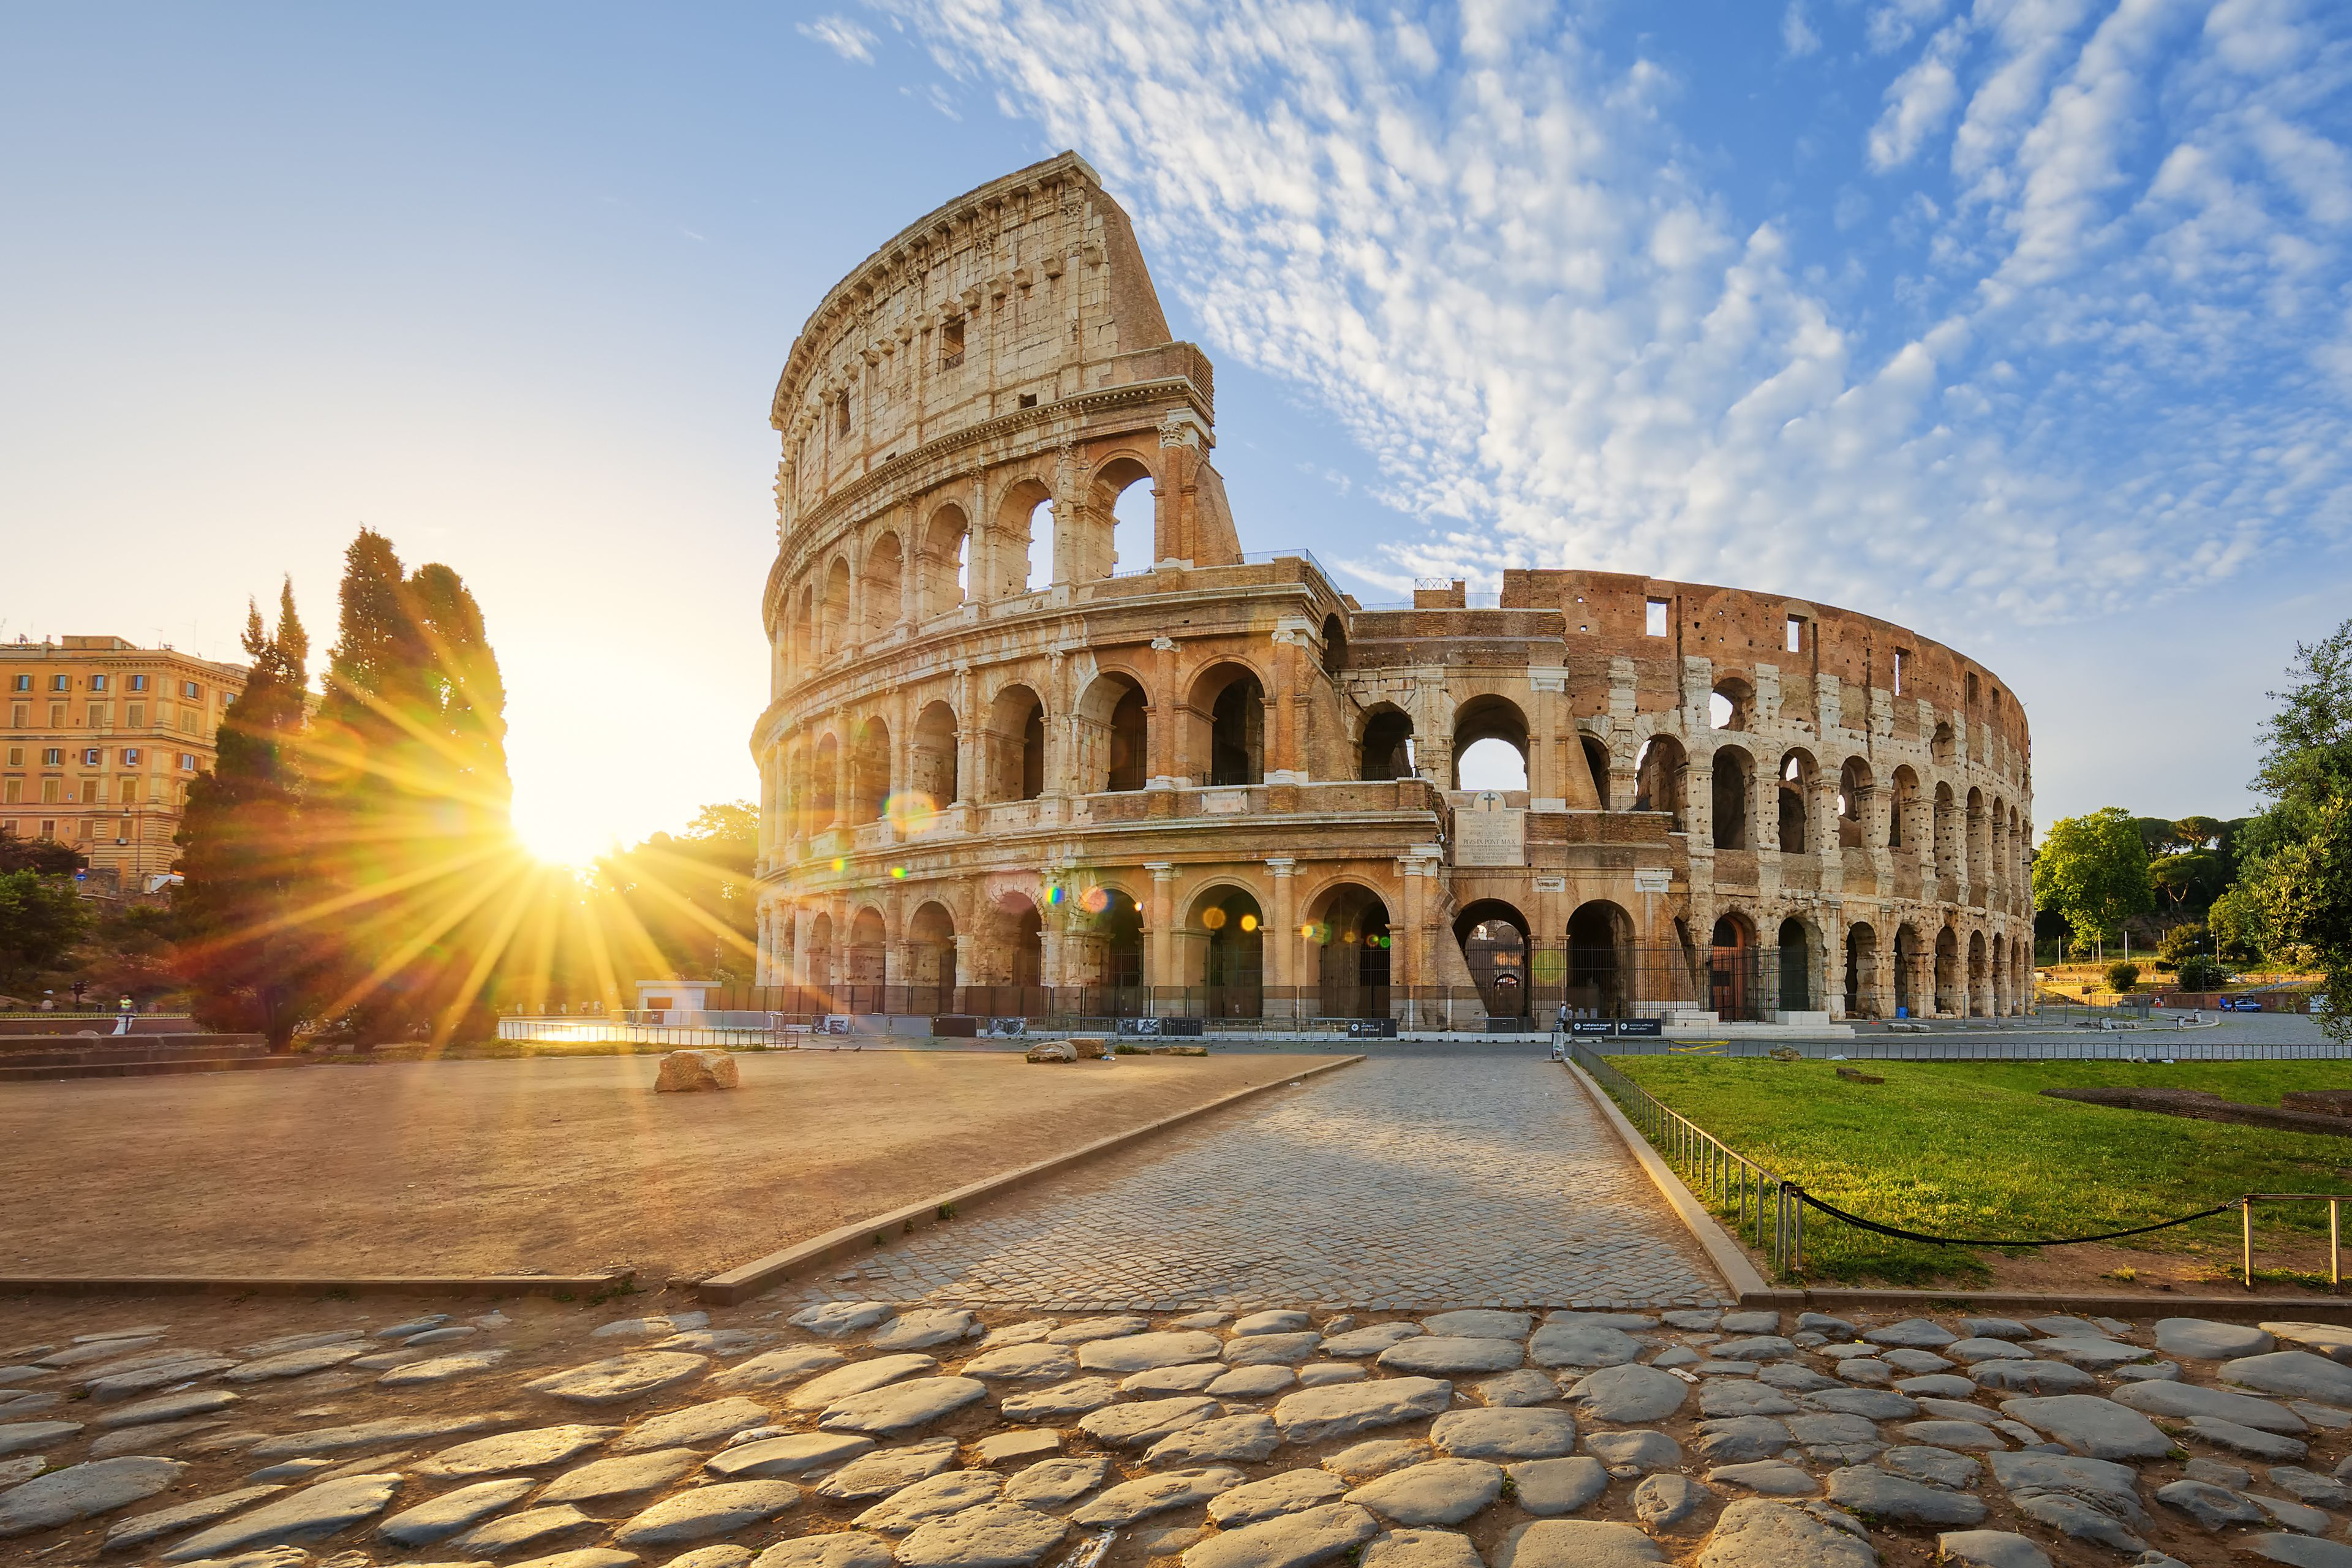 exterior of Roman colosseum with sun rising